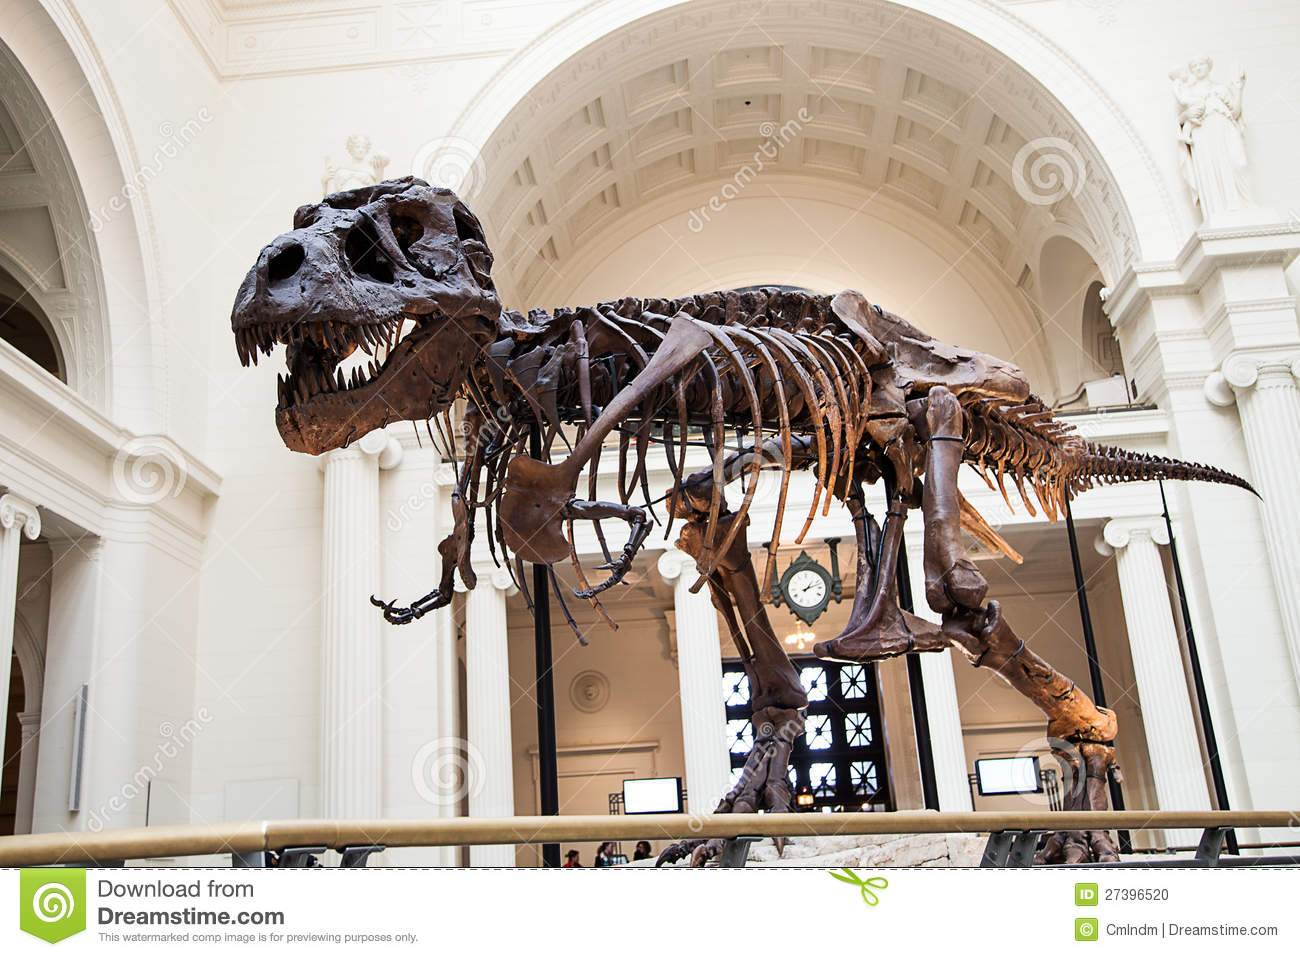 download the field museum - photo #26